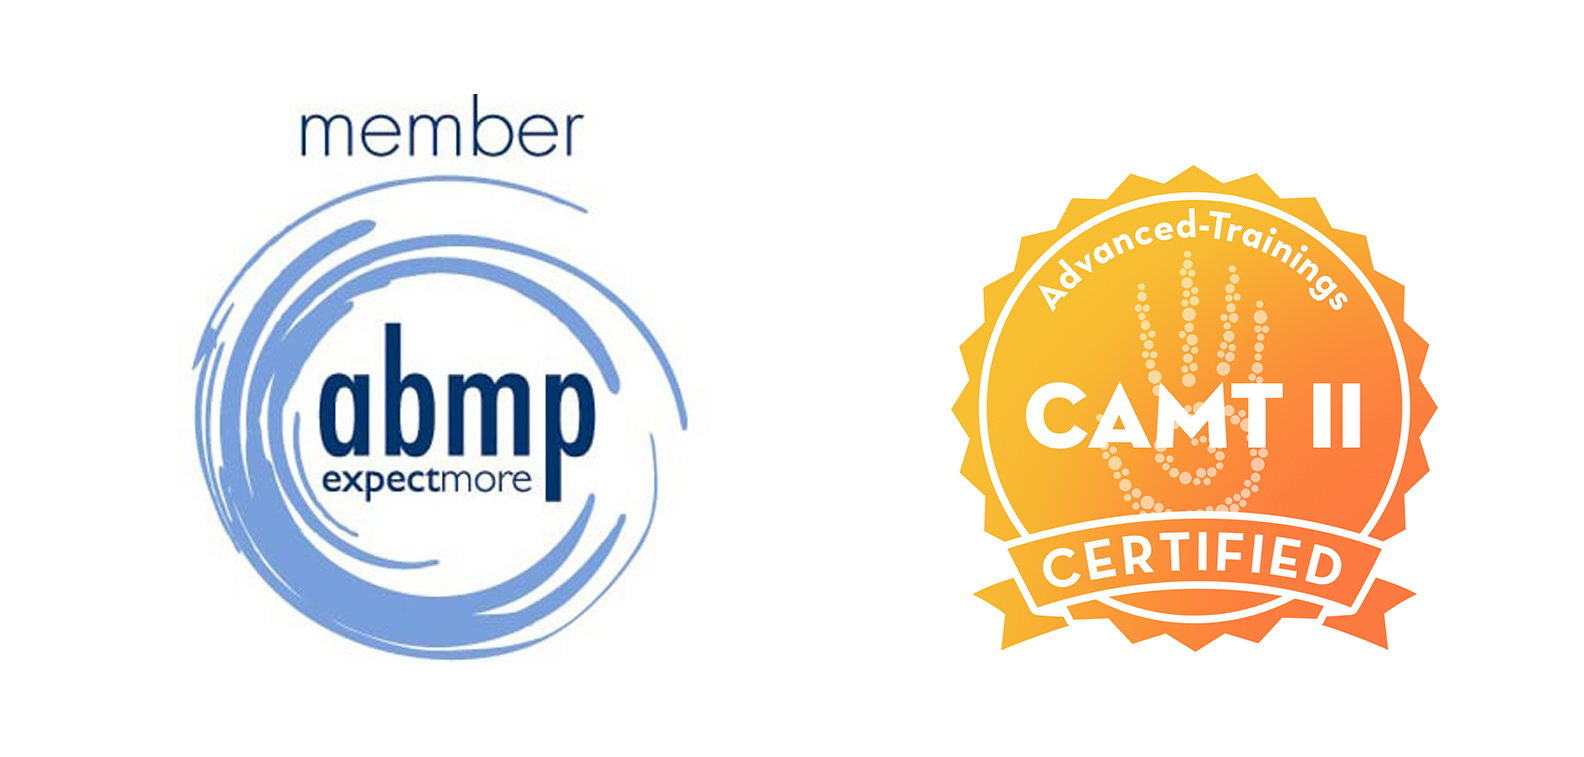 Certified in Advanced Myofascial Techniques, Level I (CAMT I) through  Advanced-Trainings.com